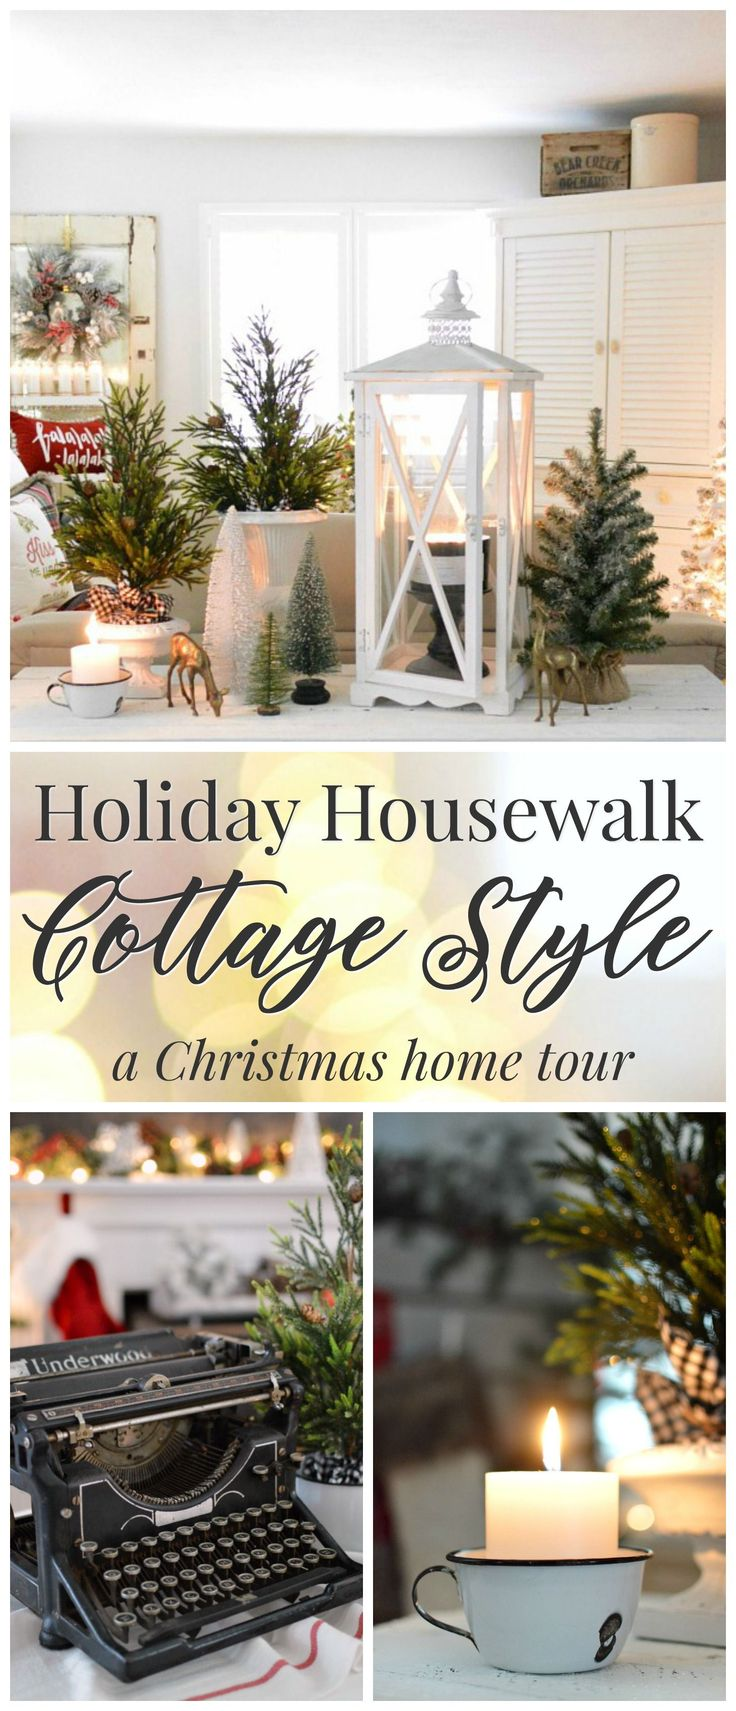 Holiday Housewalk Christmas at the cottage, home tour.